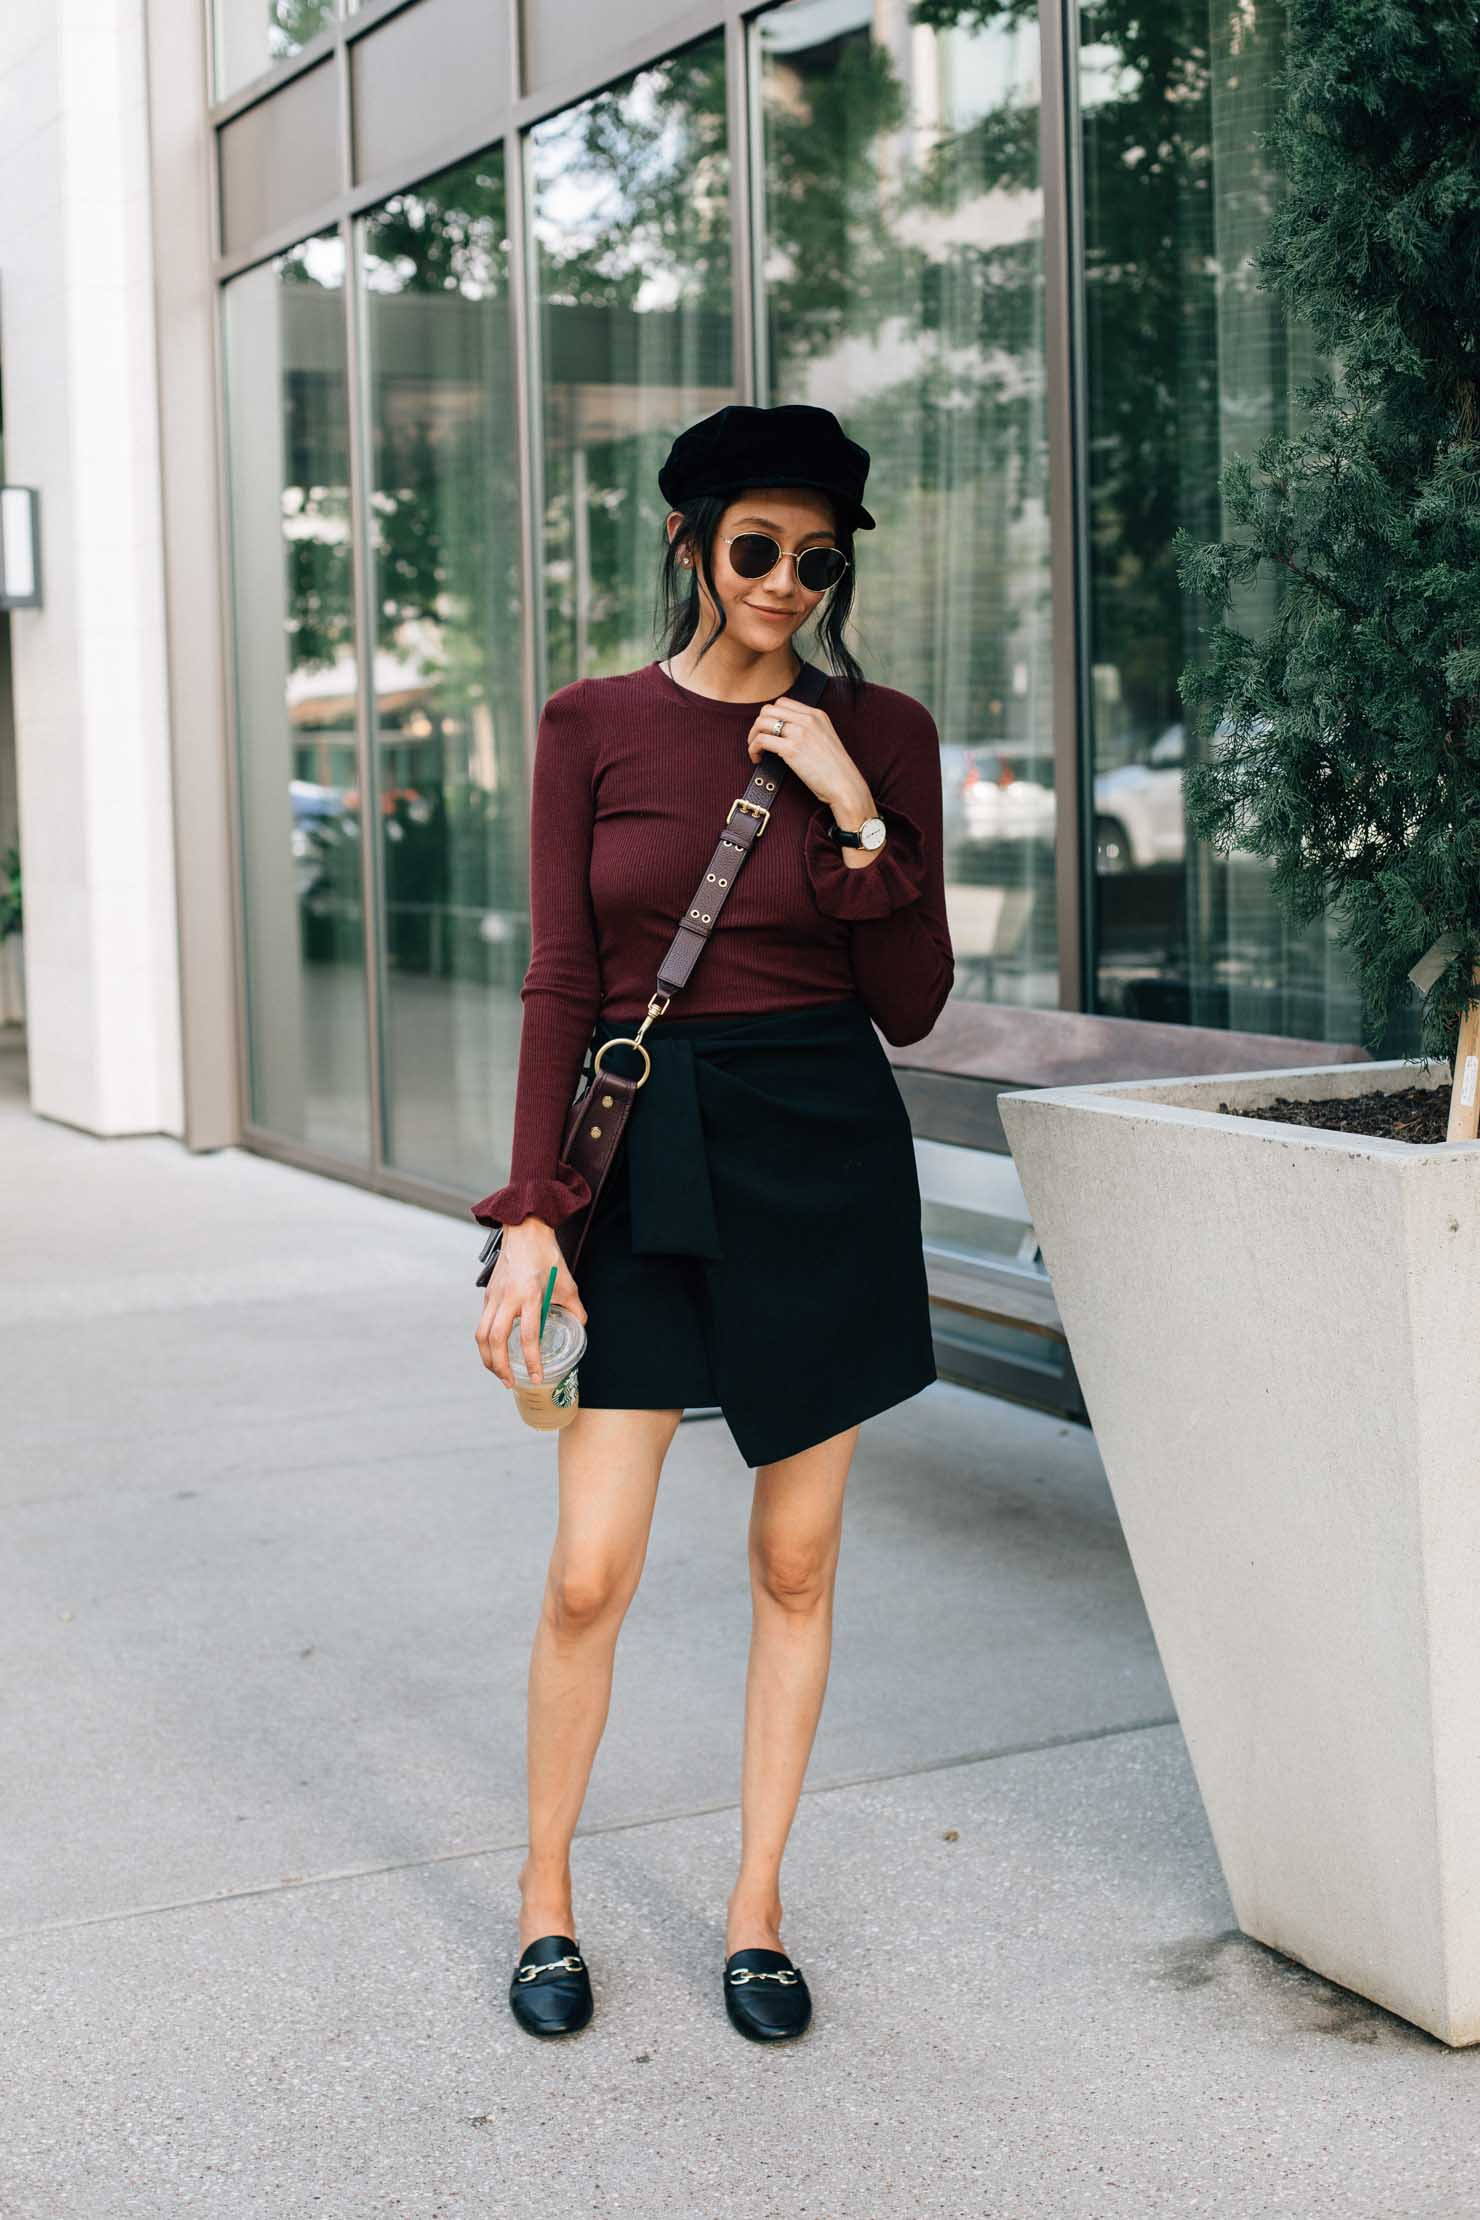 Fashion blogger Lilly Beltran of Daily Craving in a casual fall look with a burgundy sweater and black wrap skirt with a baker boy hat | Wear it twice